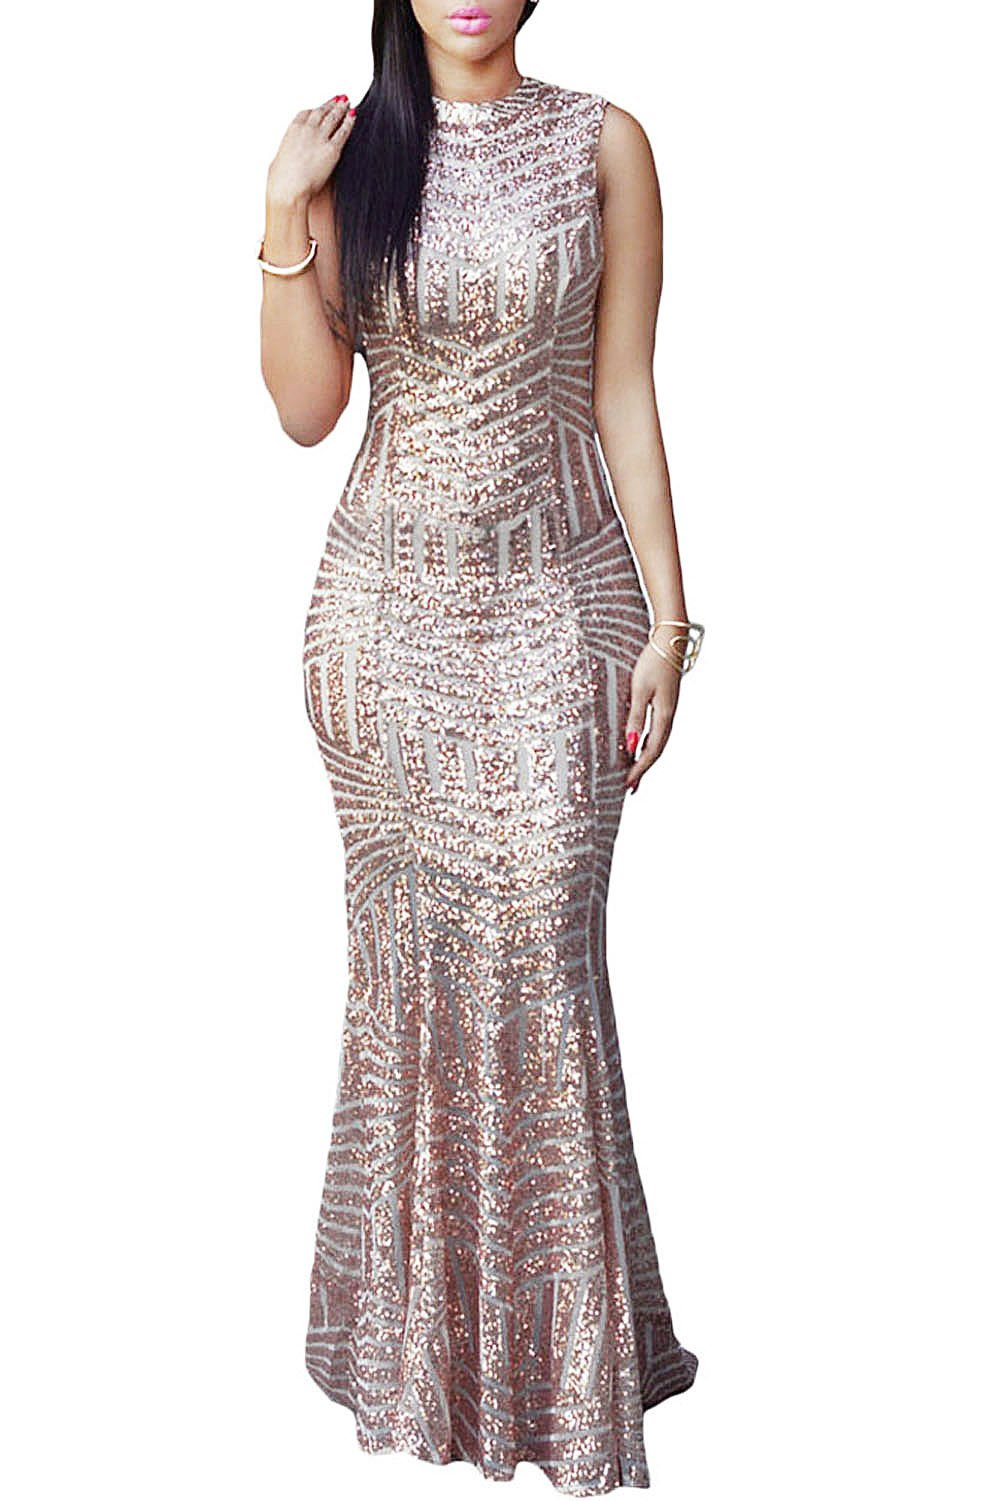 LOSRLY Womens Sequin Maxi Long Party Cocktail Club Formal Evening Prom Mermaid Dress Prime Gold M 8 10